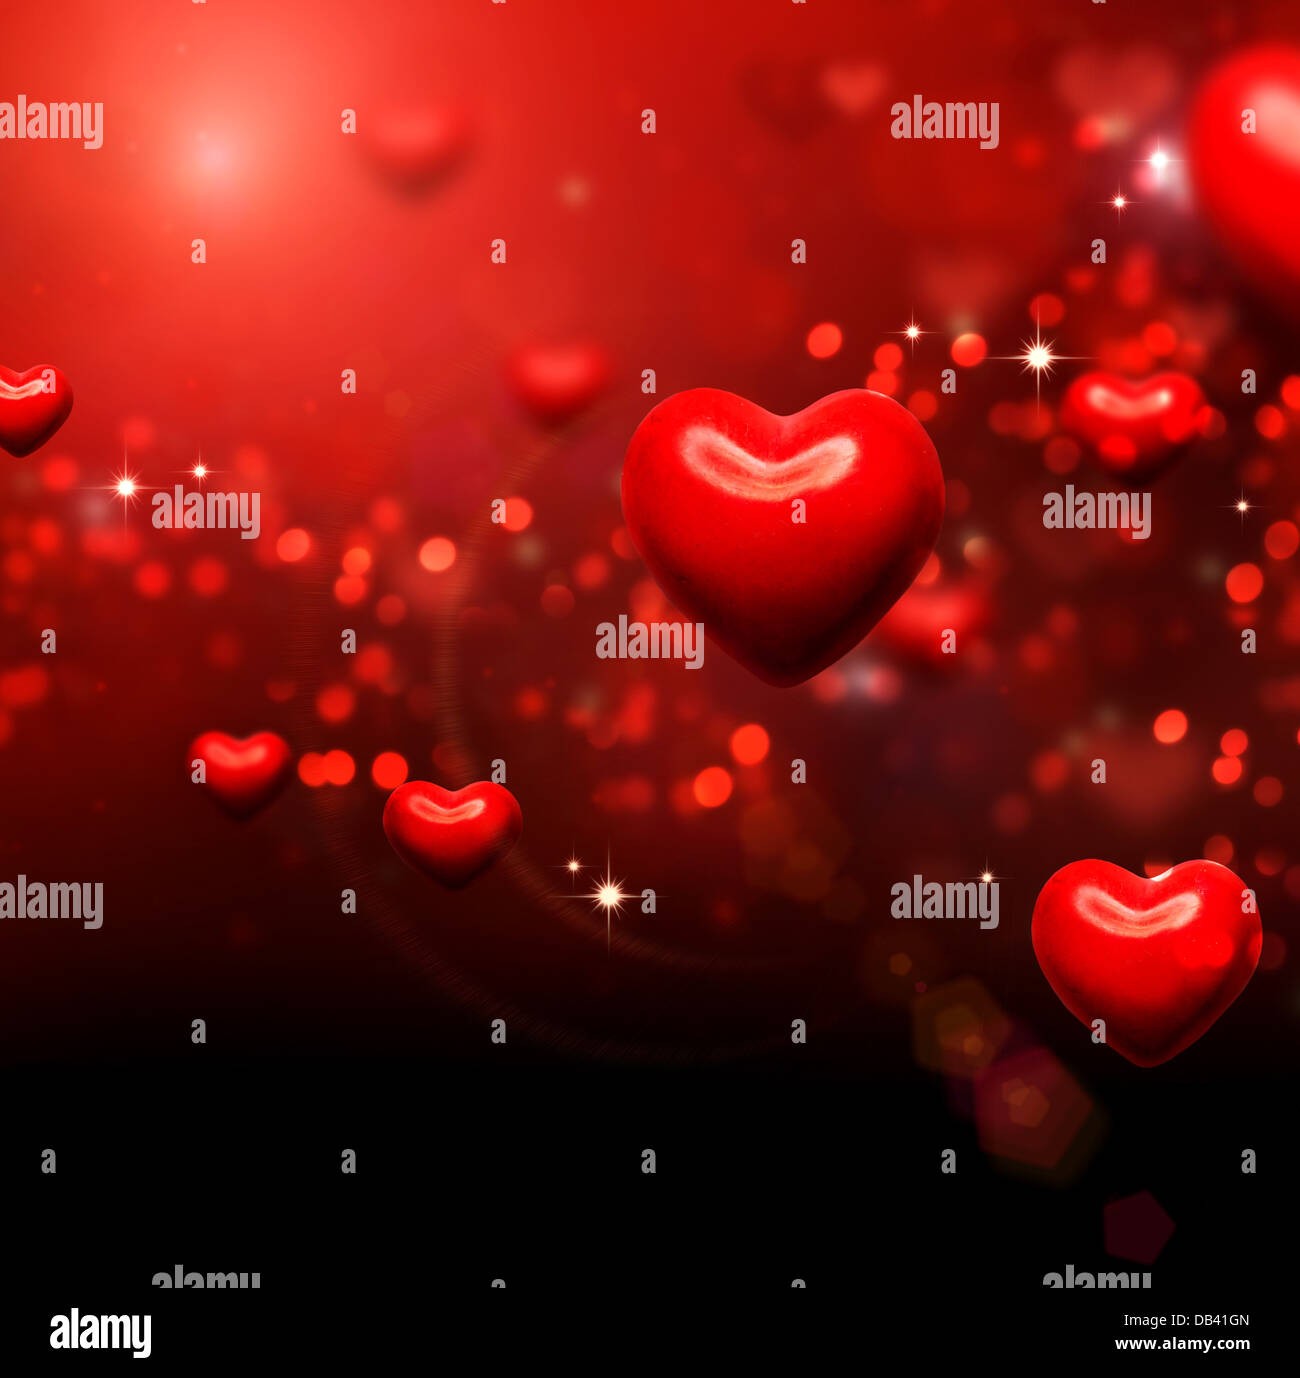 Valentine Hearts. Valentines Red Abstract Wallpaper Photo Stock